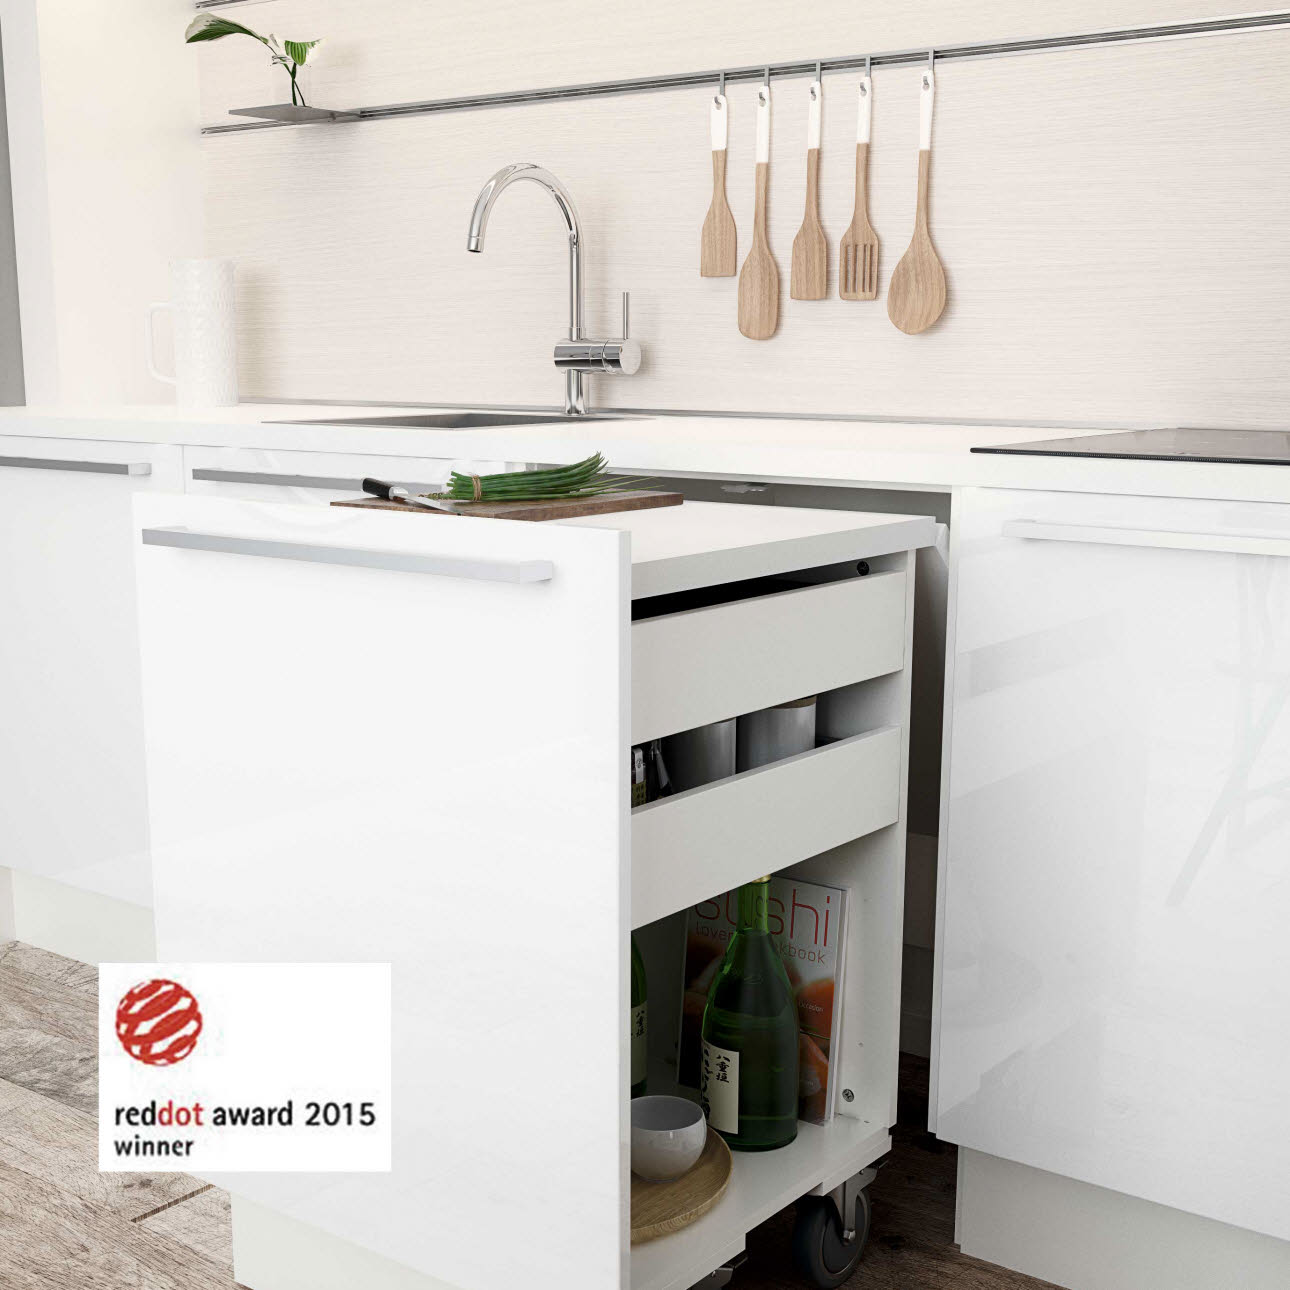 Worktop ID Red dot